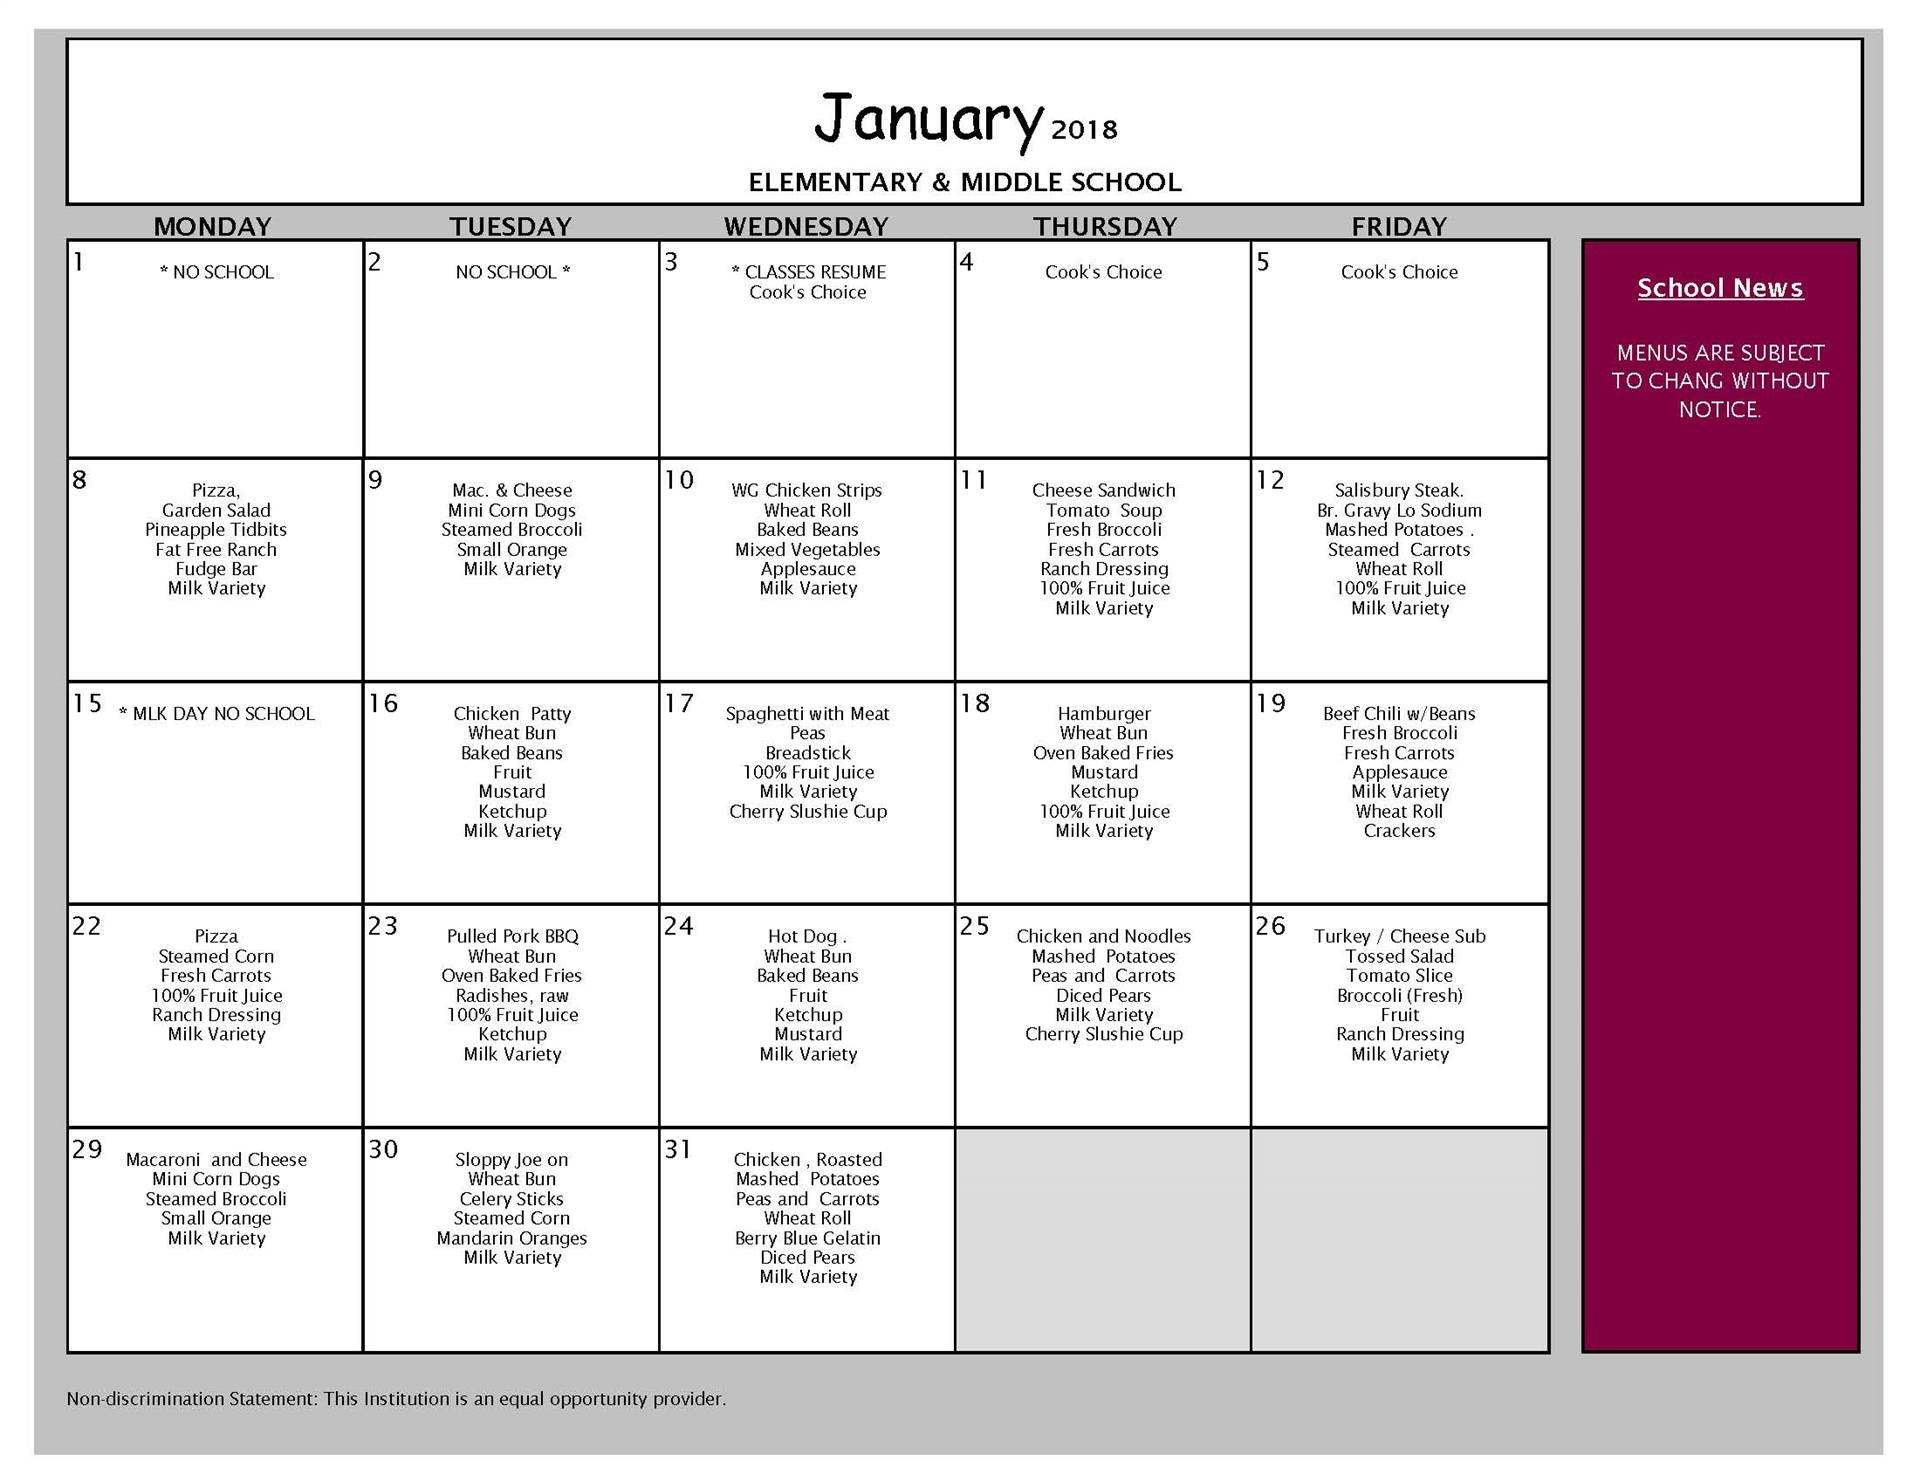 January Lunch Menu - Middle and Elementary Schools